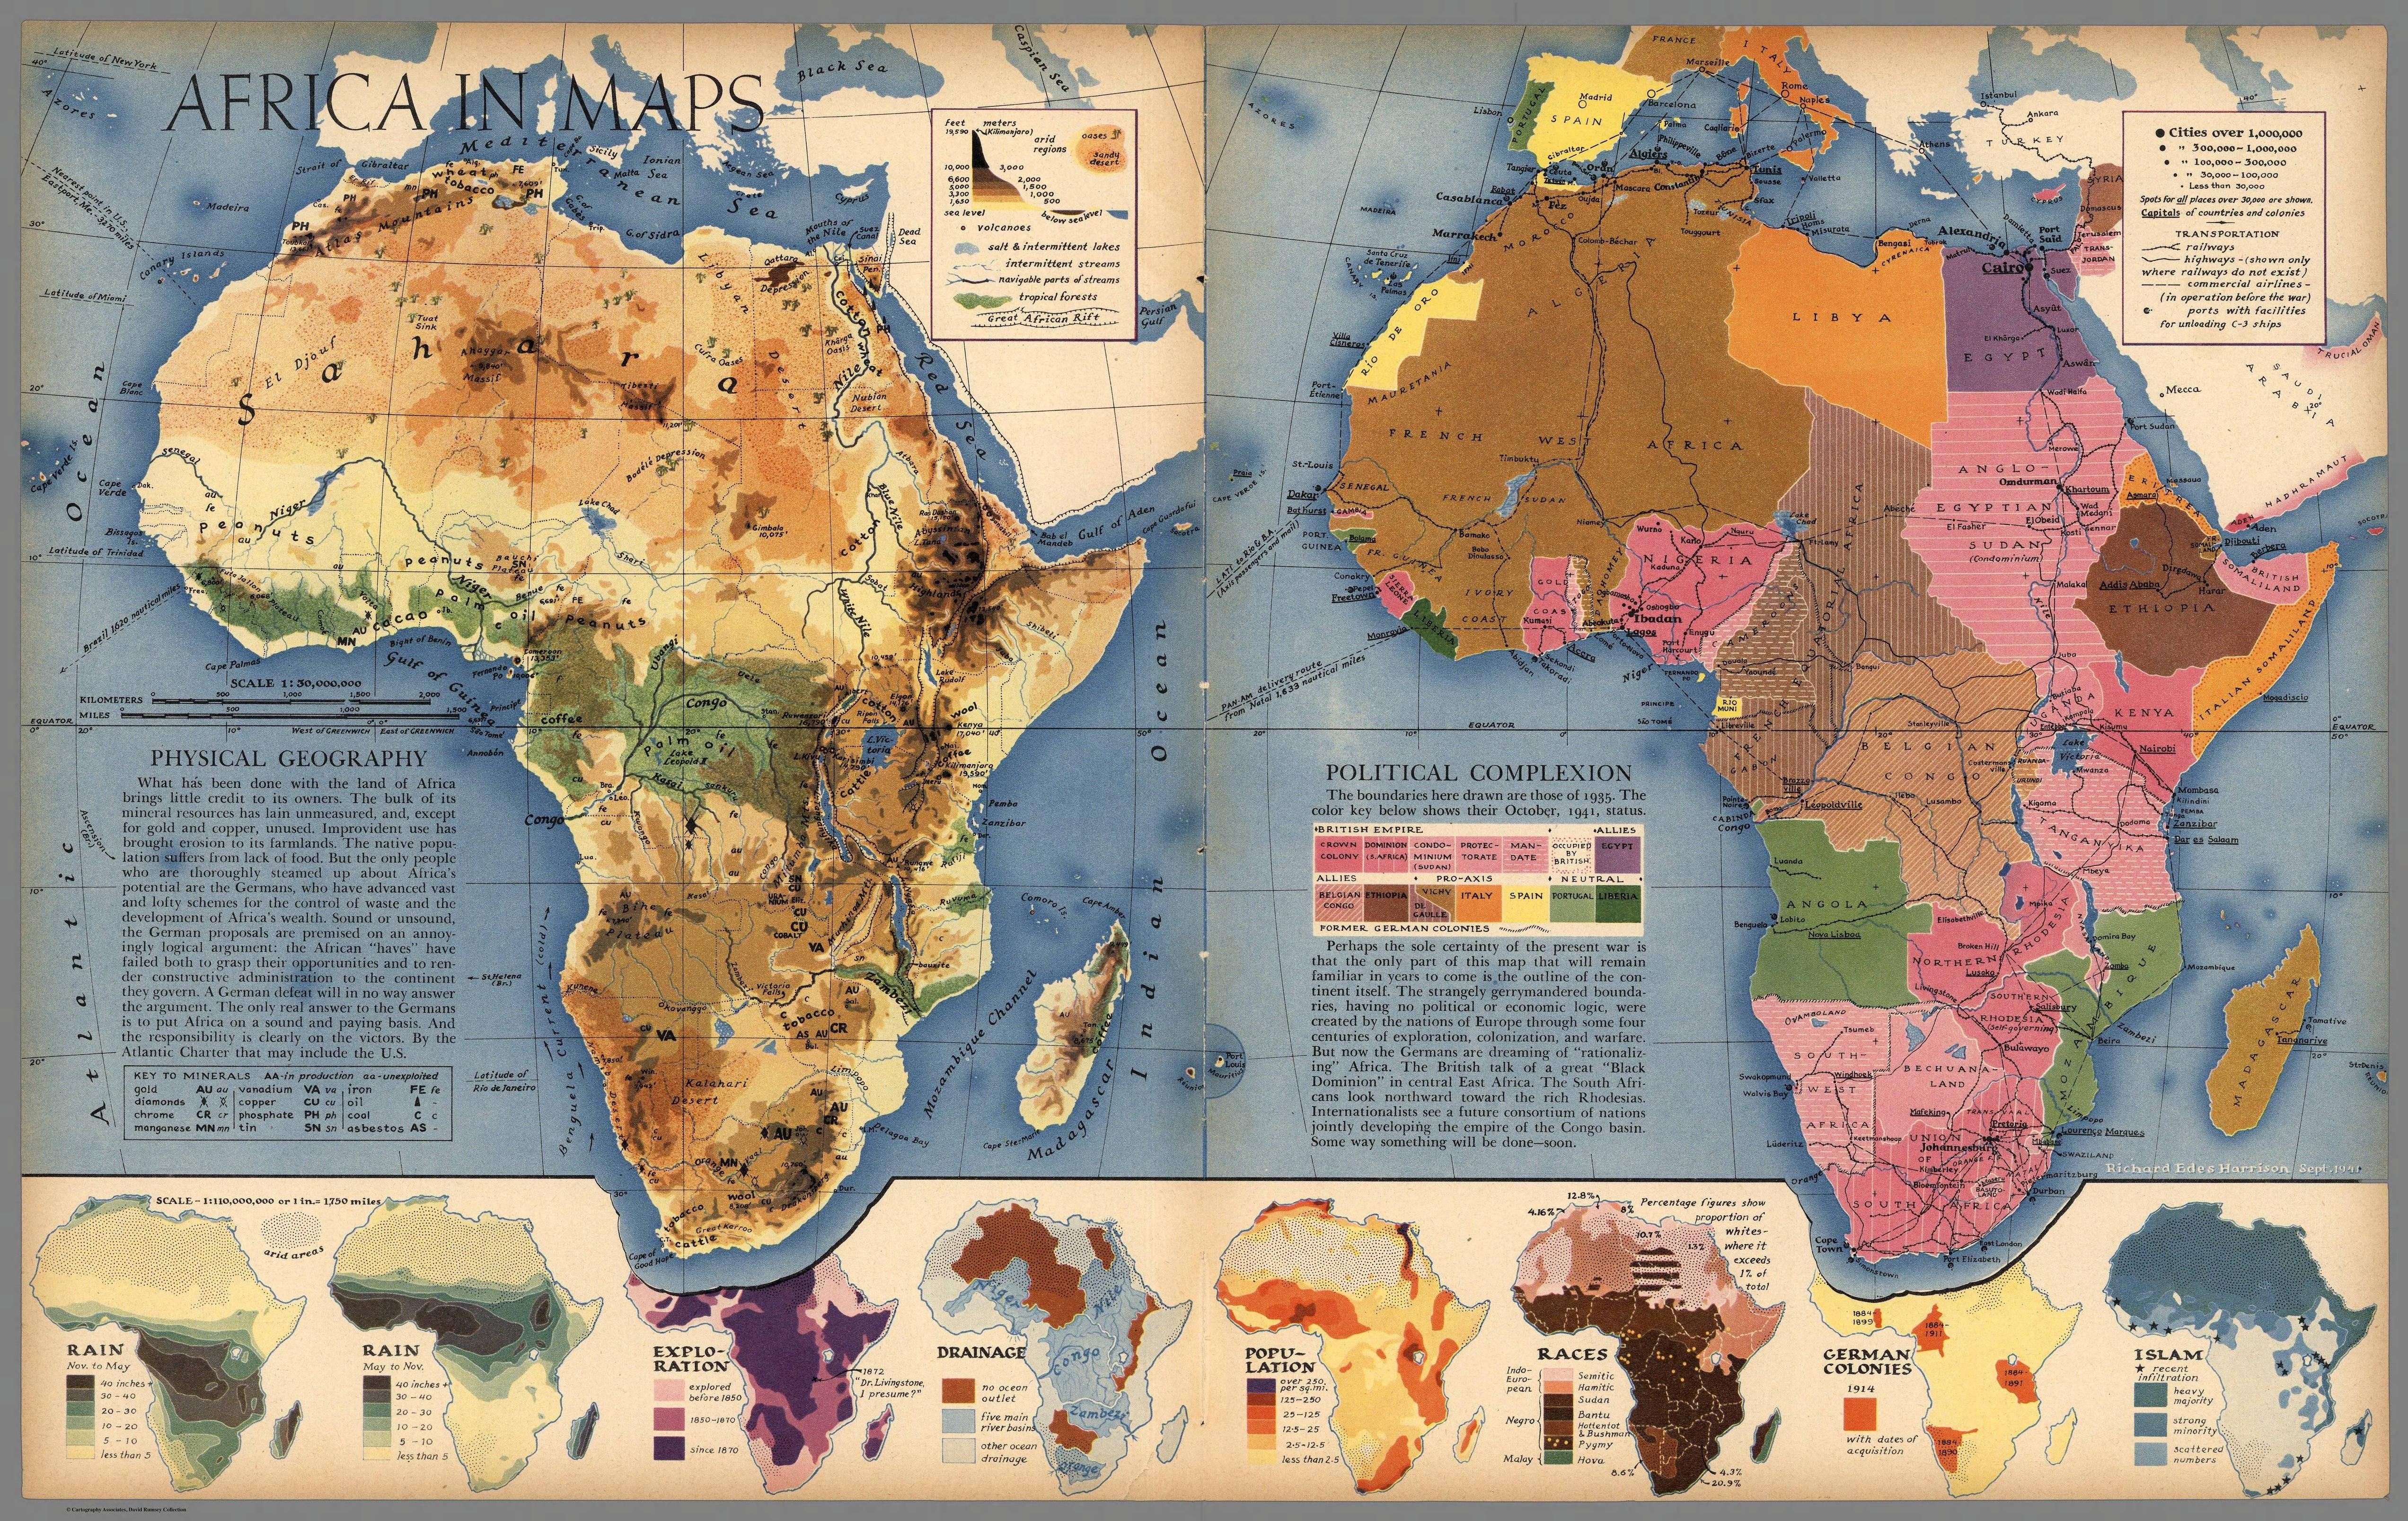 Africa in maps 1941 maps pinterest allies in world war 1941 print map africa topography wartime allies world war ii population resource original color print gumiabroncs Images